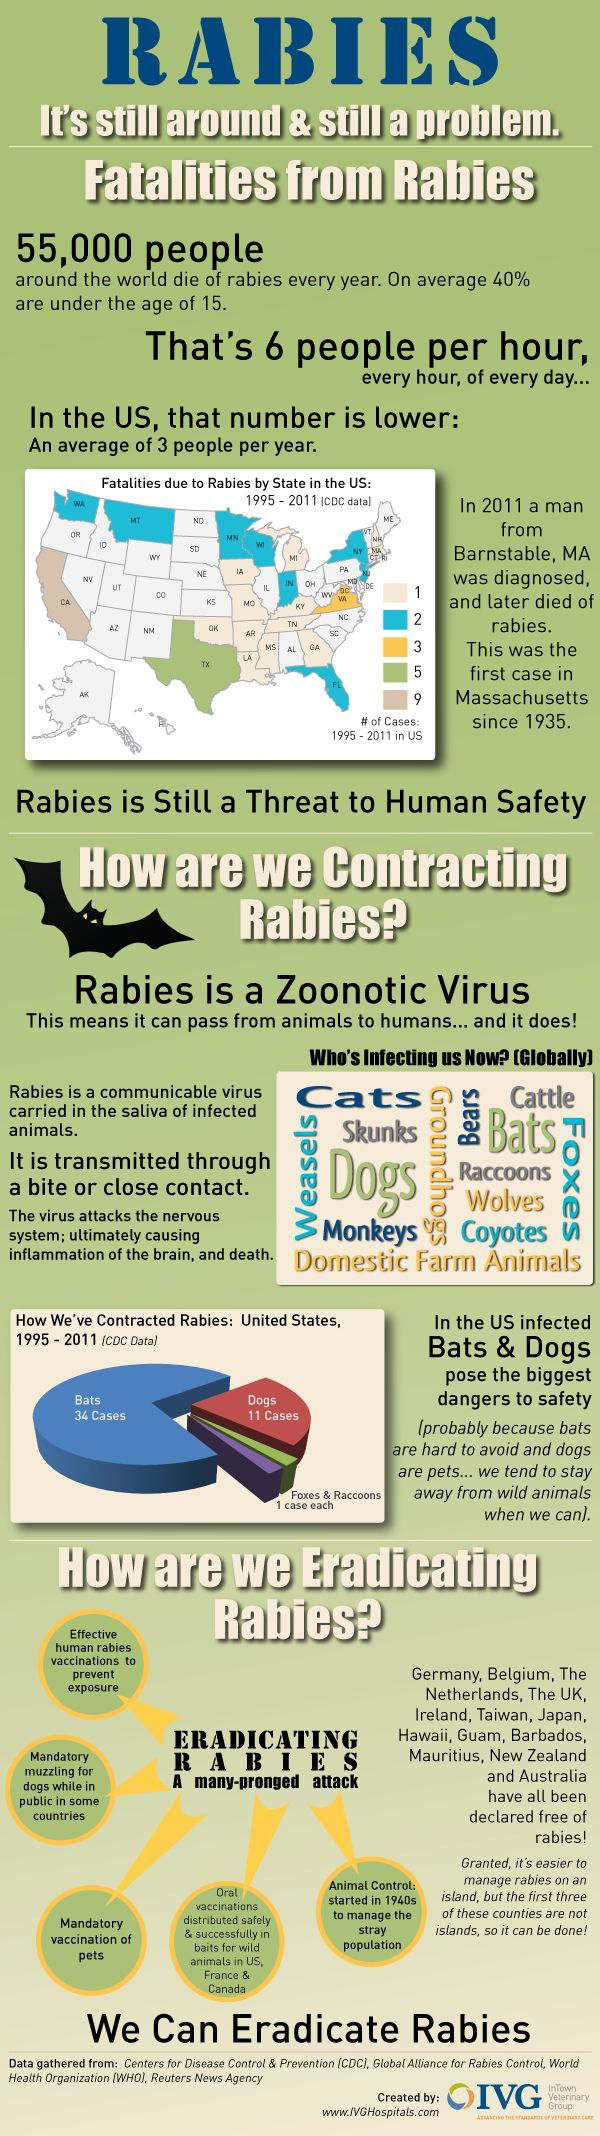 Rabies - still a problem. Here is some data in advance of World Rabies Day - Sept. 28,2012.